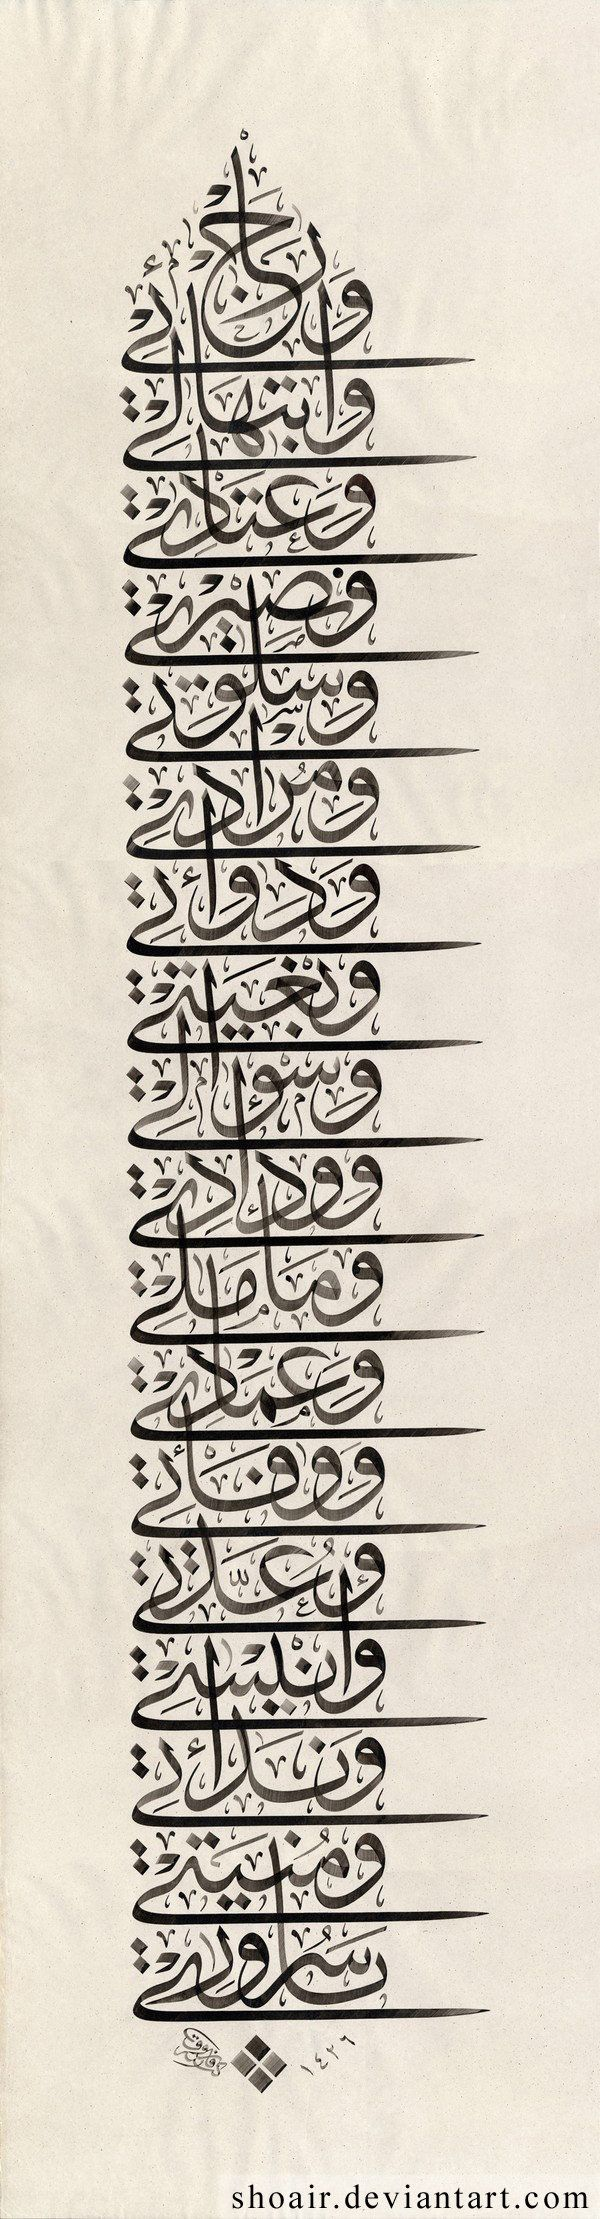 """Say """"Nothing will afflict us but what Allâh has ordained for us"""" Arabic Calligraphy and Islamic Art by Nihad Nadam For more: www.nihad.me/calligraphy/41/Is…"""